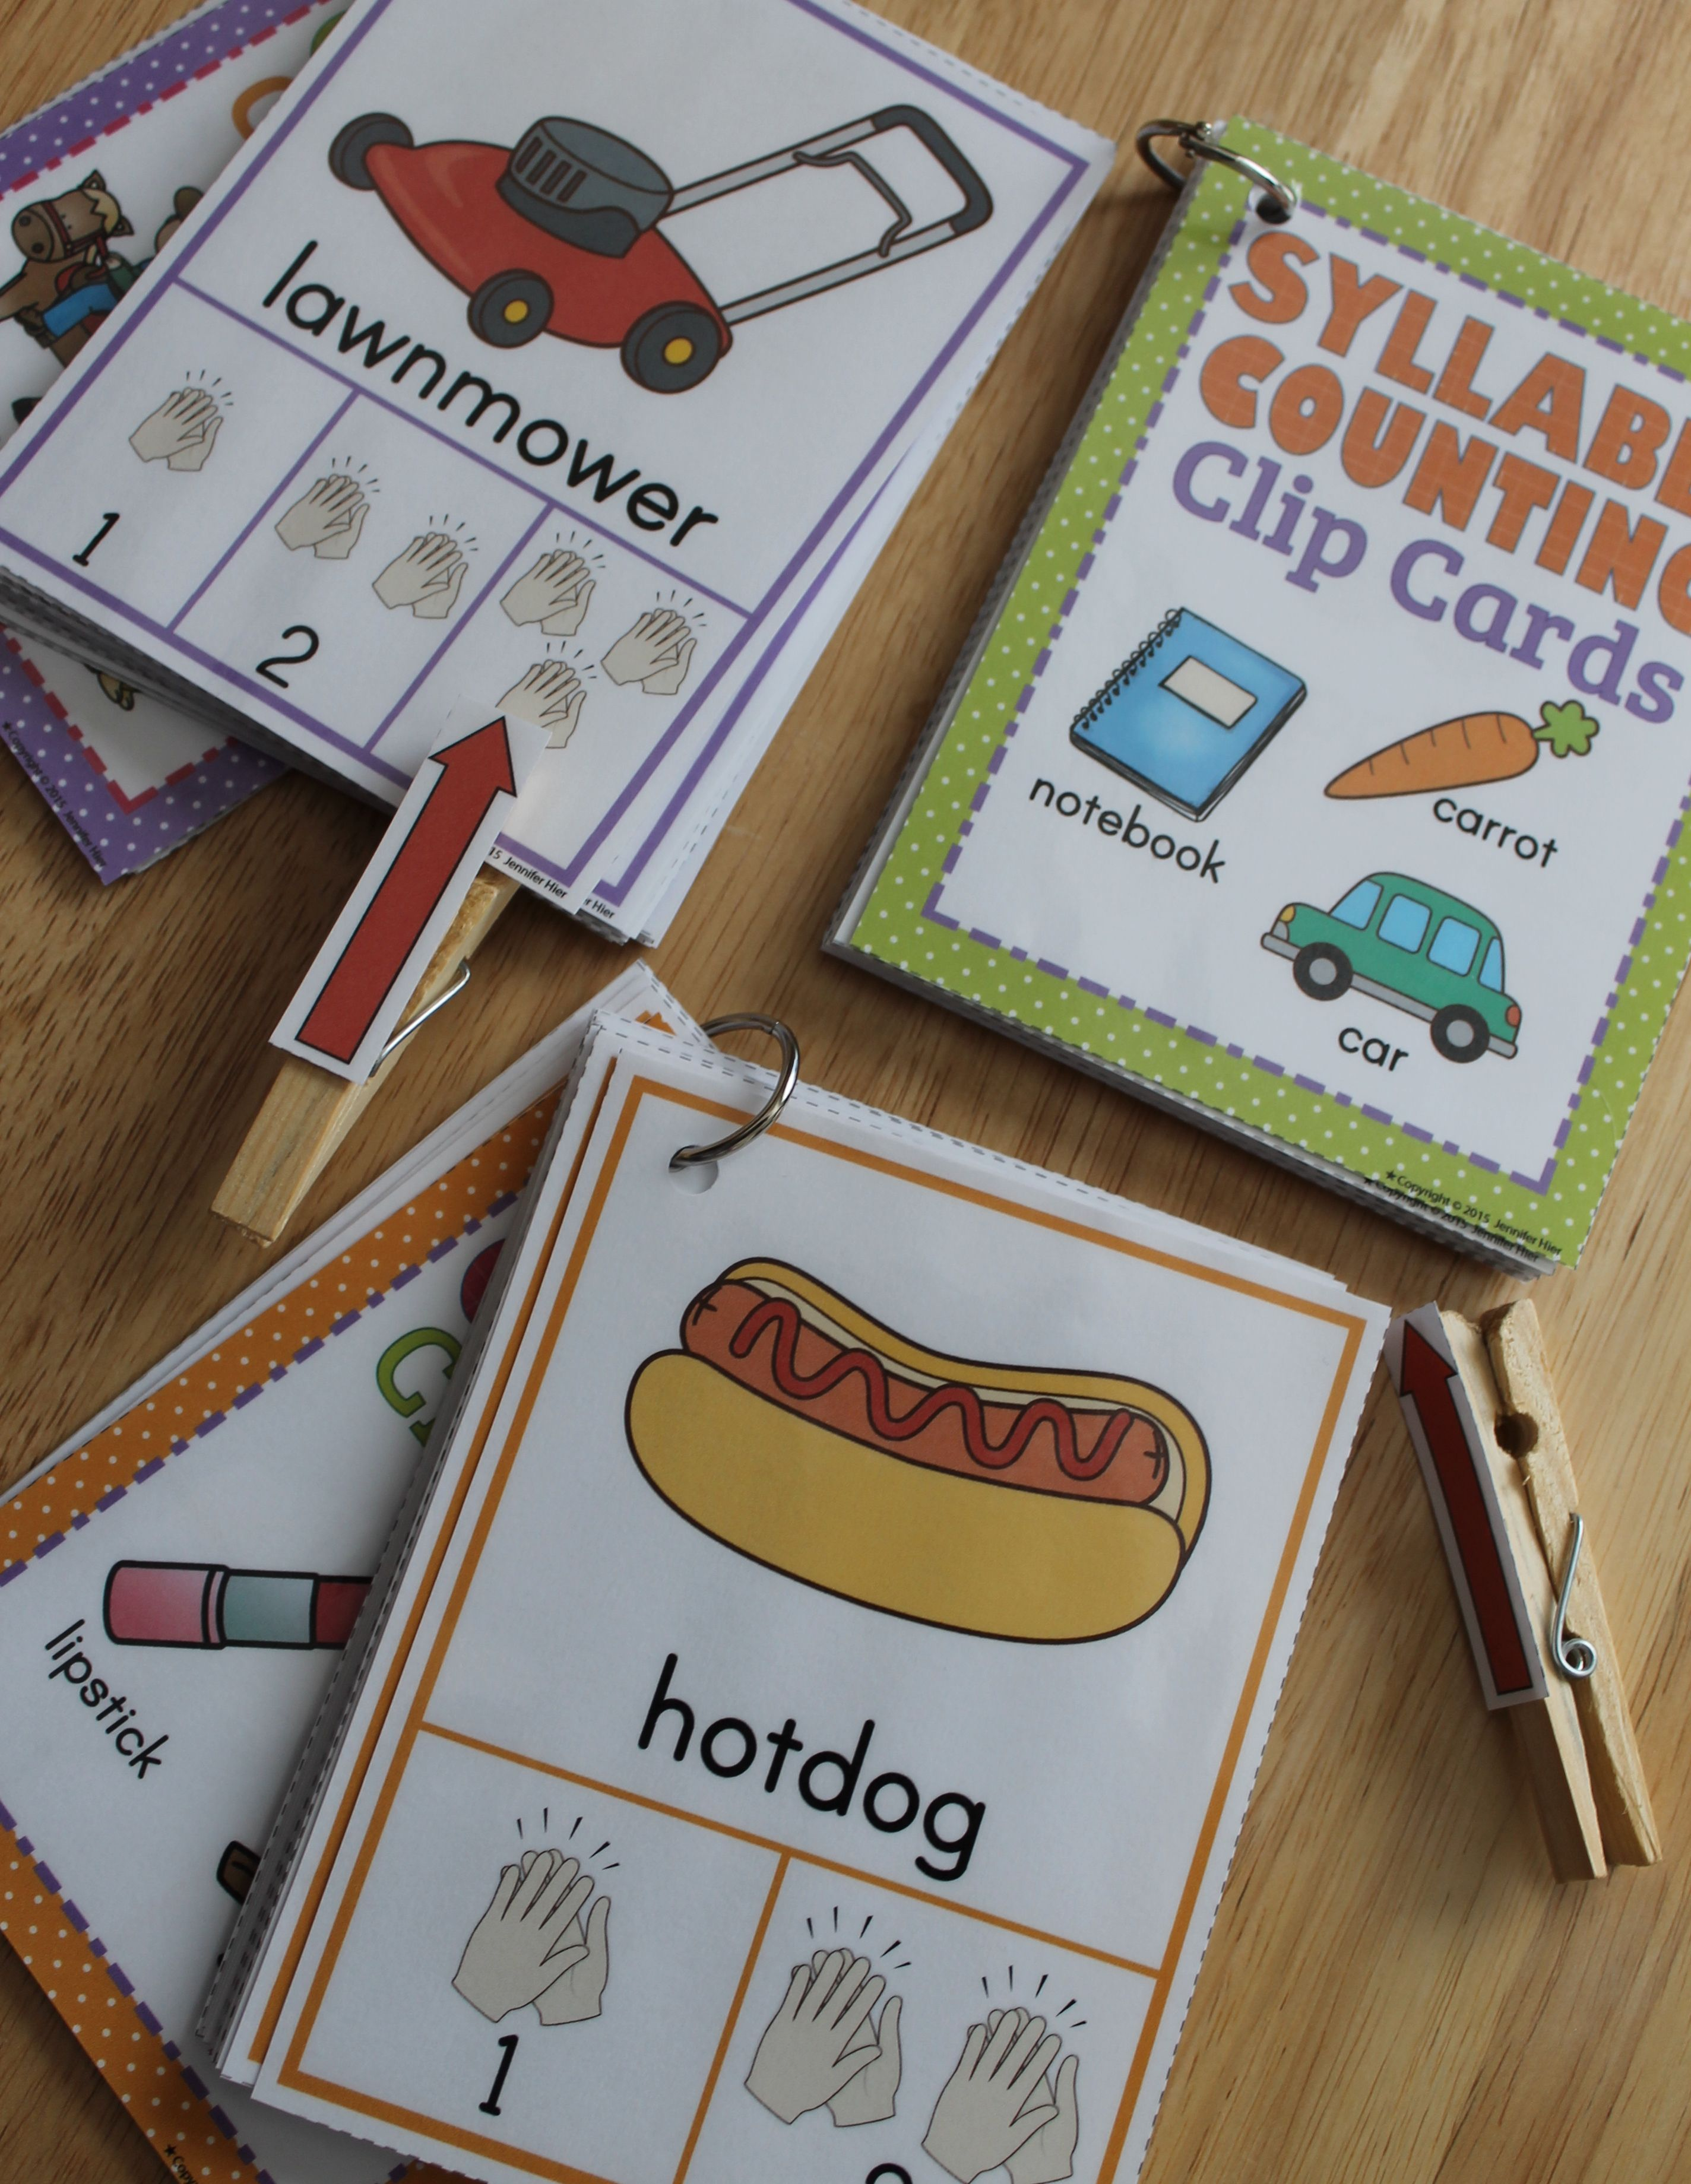 Kids Can Count And Clap The Syllables With Syllable Counting Clip Cards